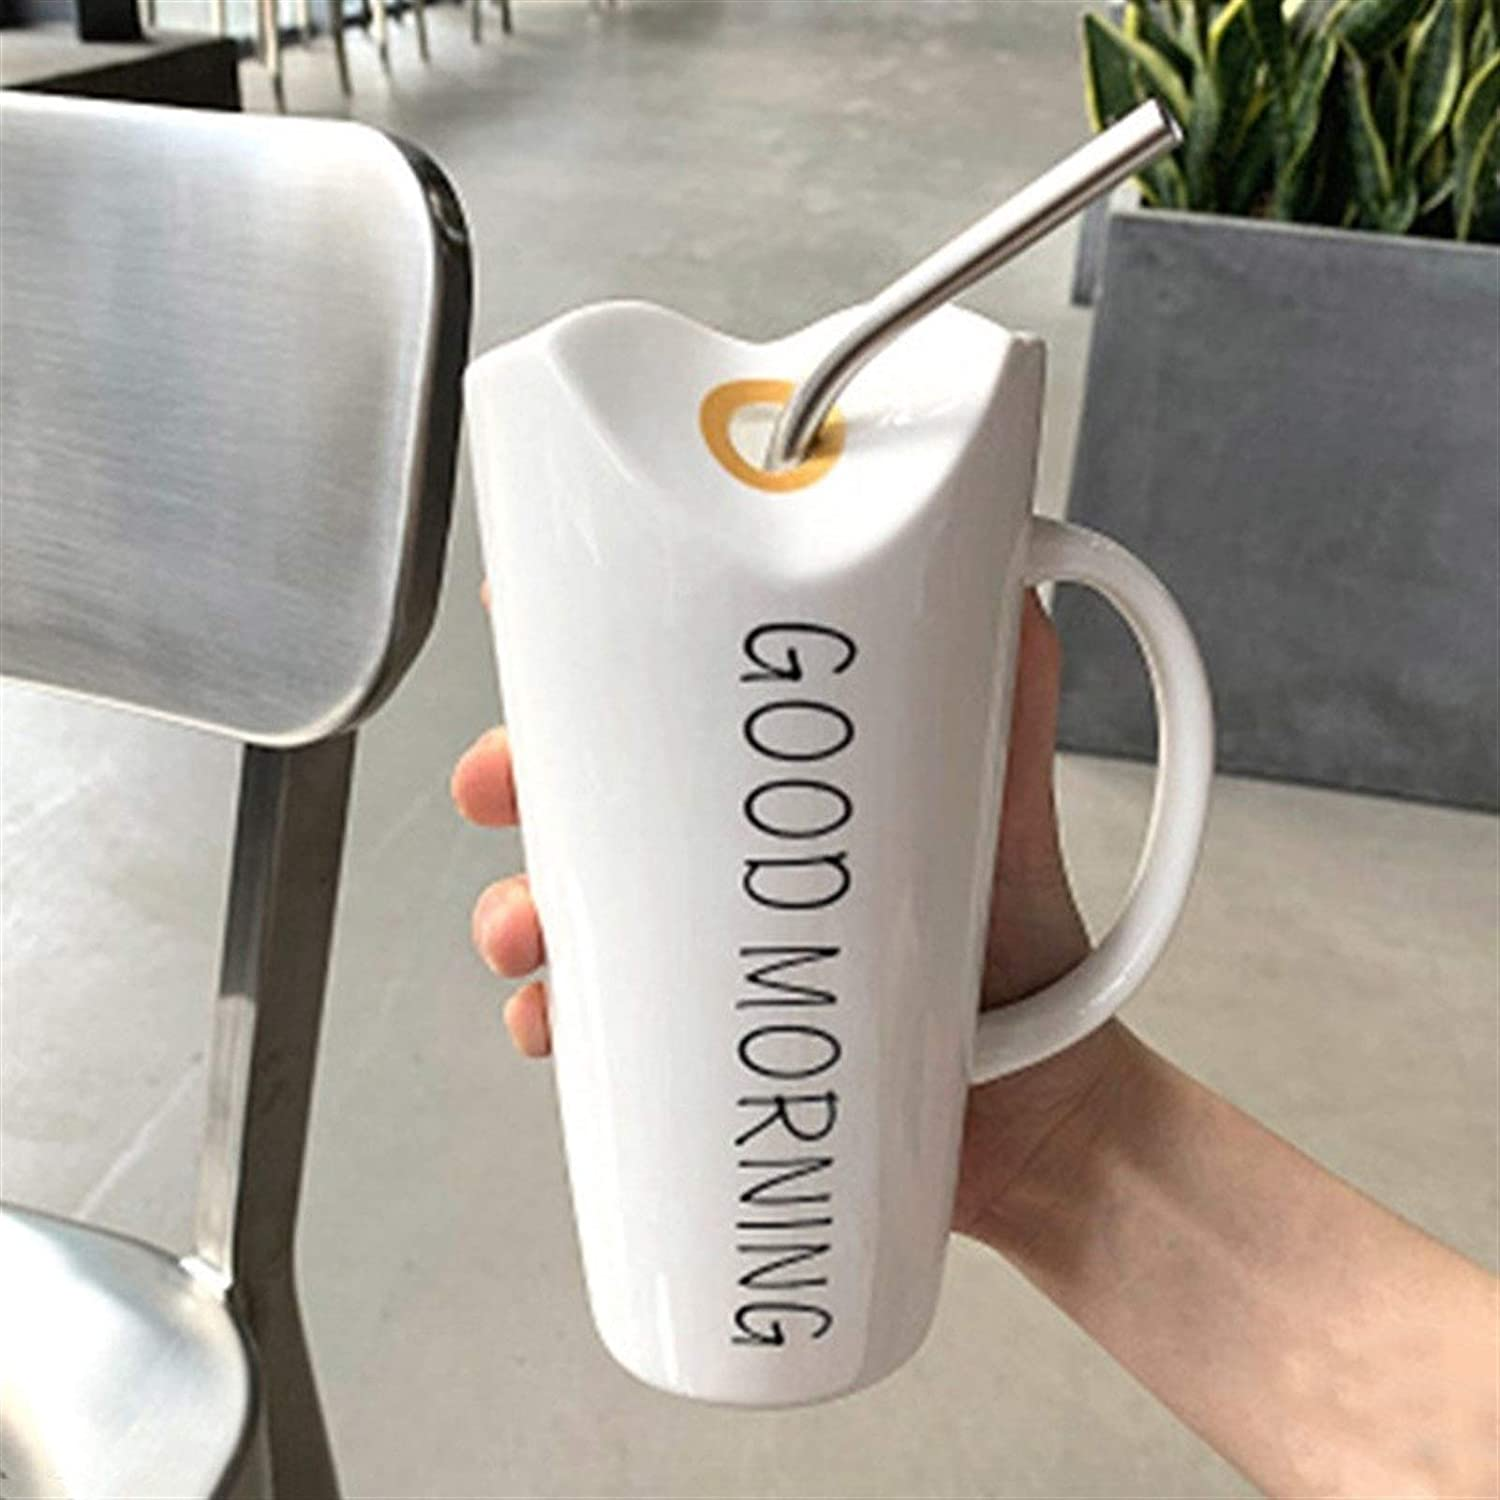 FZQSTZR Good Morning sunshine Coffee Cup Be super welcome Spring new work one after another Stainless With gl Steel